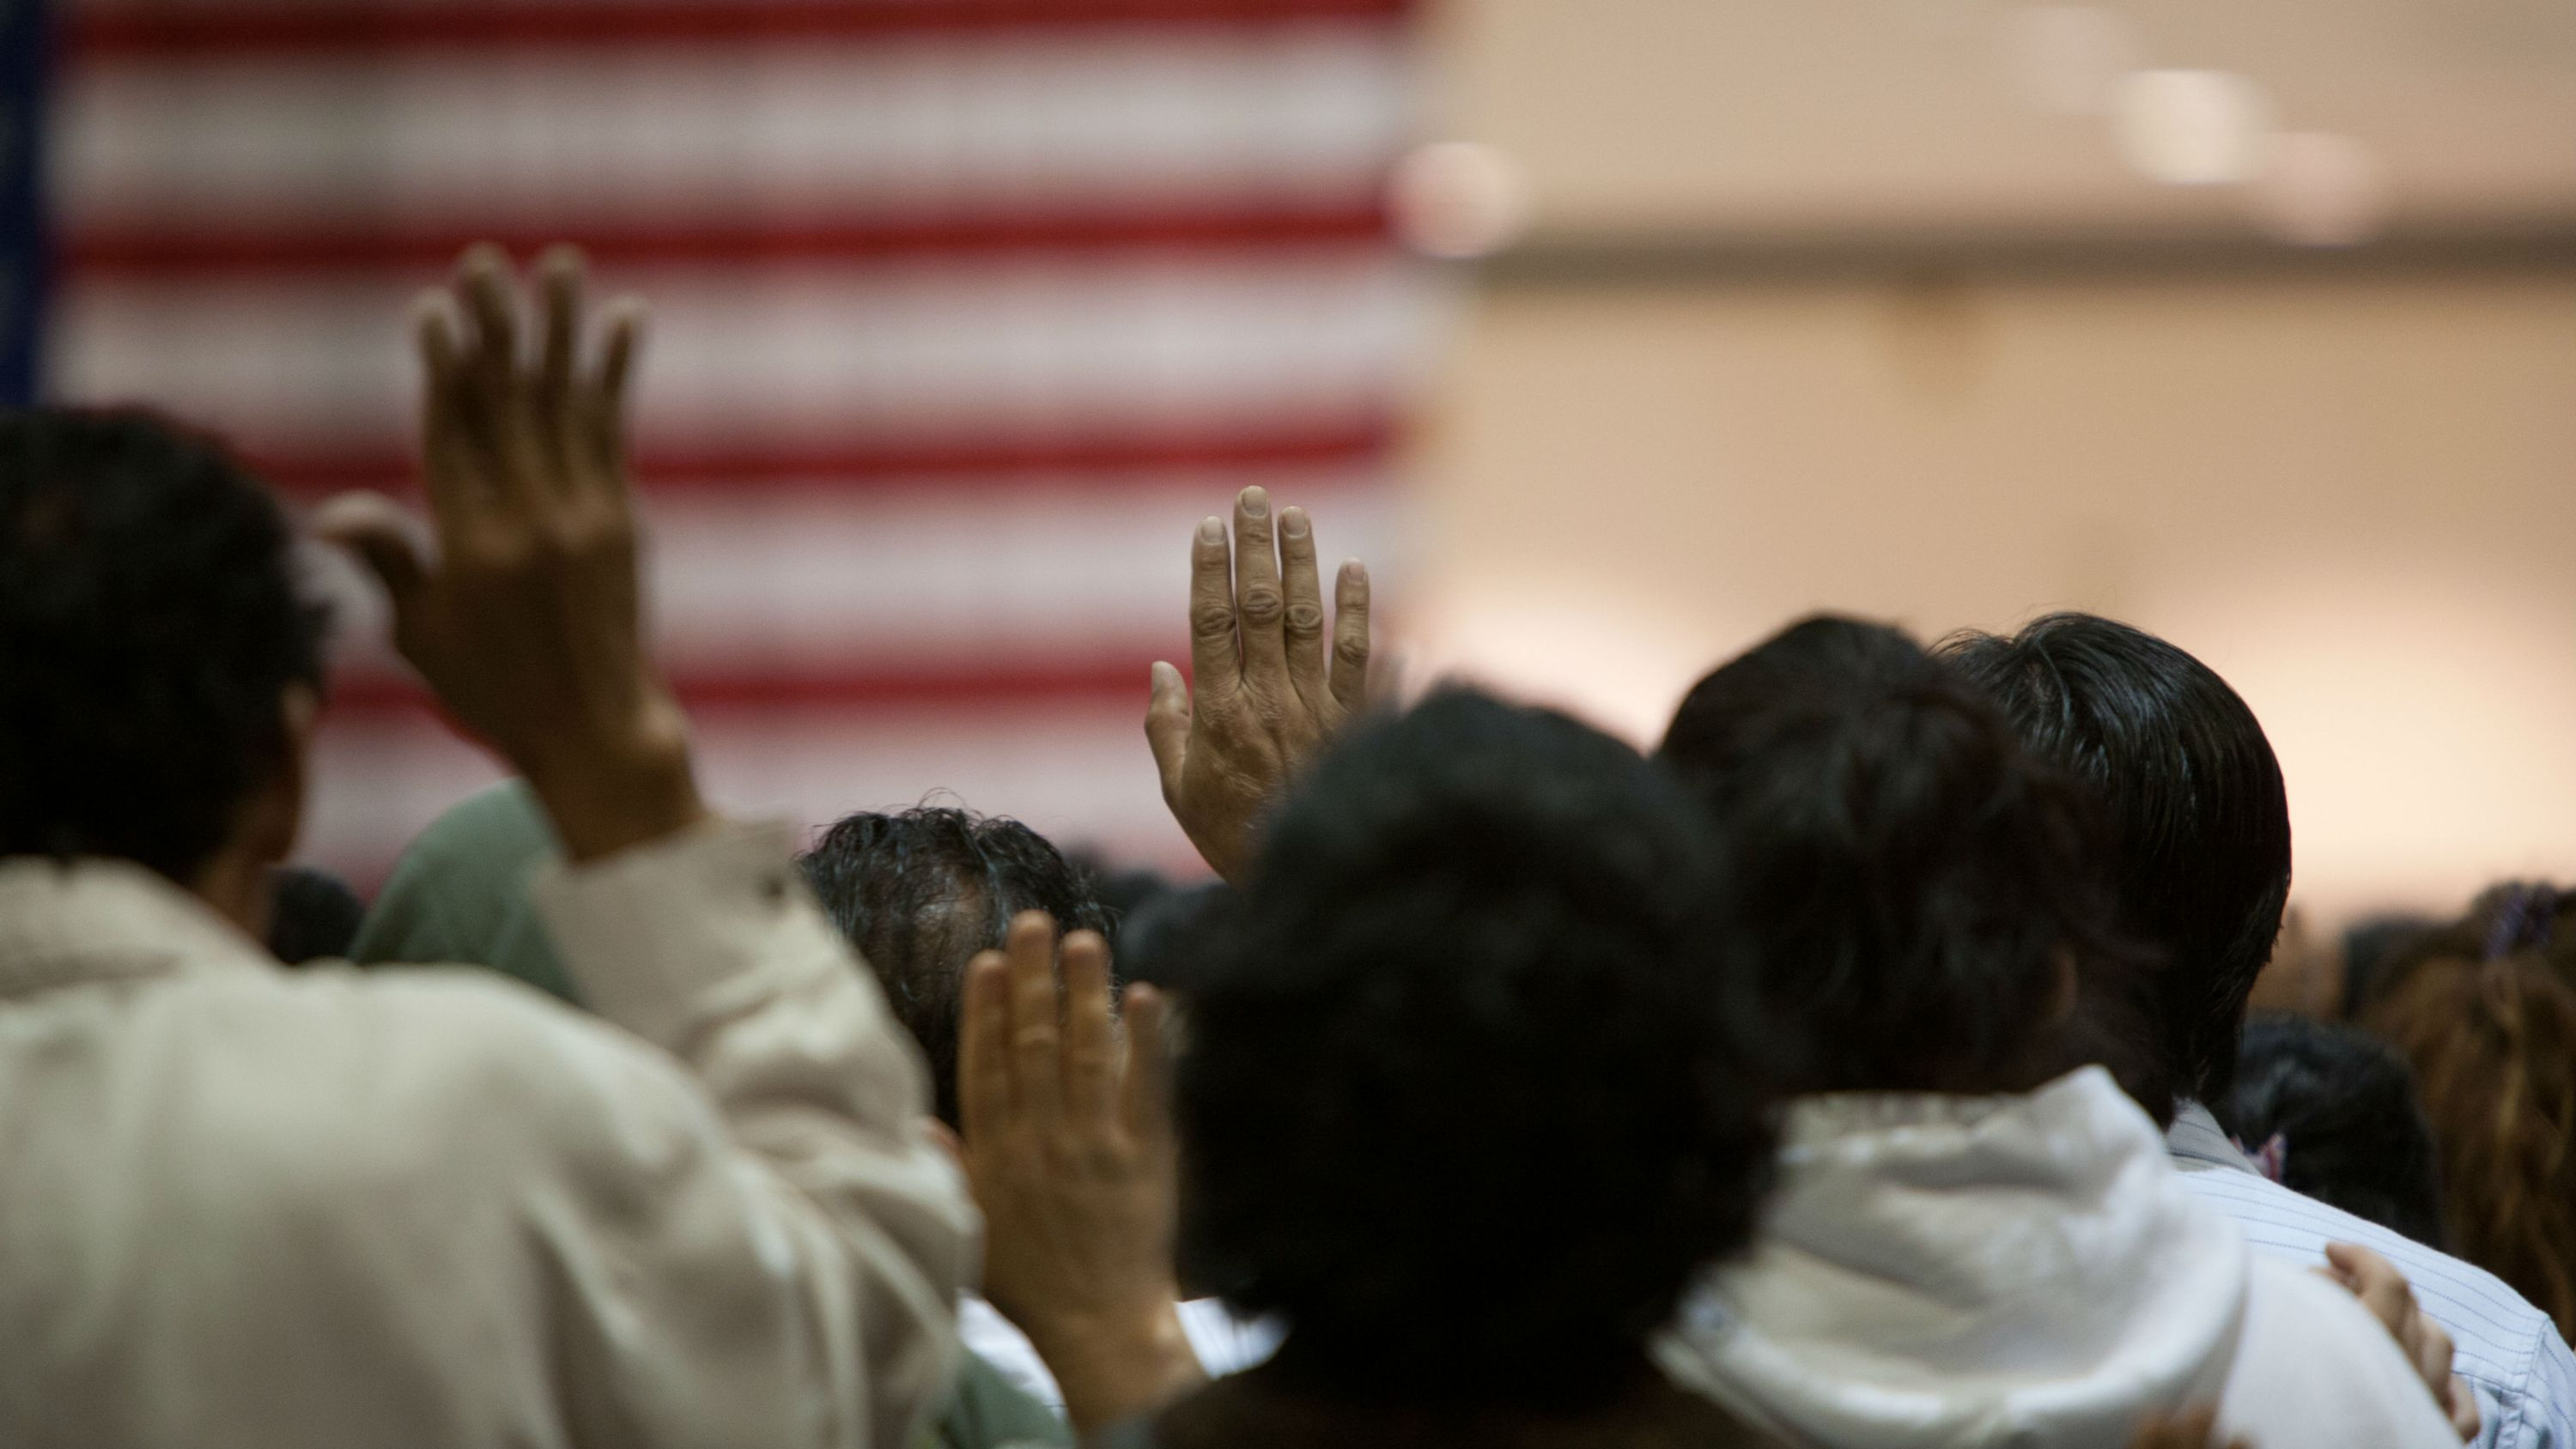 Republican Resistance to Easy Naturalization Will Likely Backfire